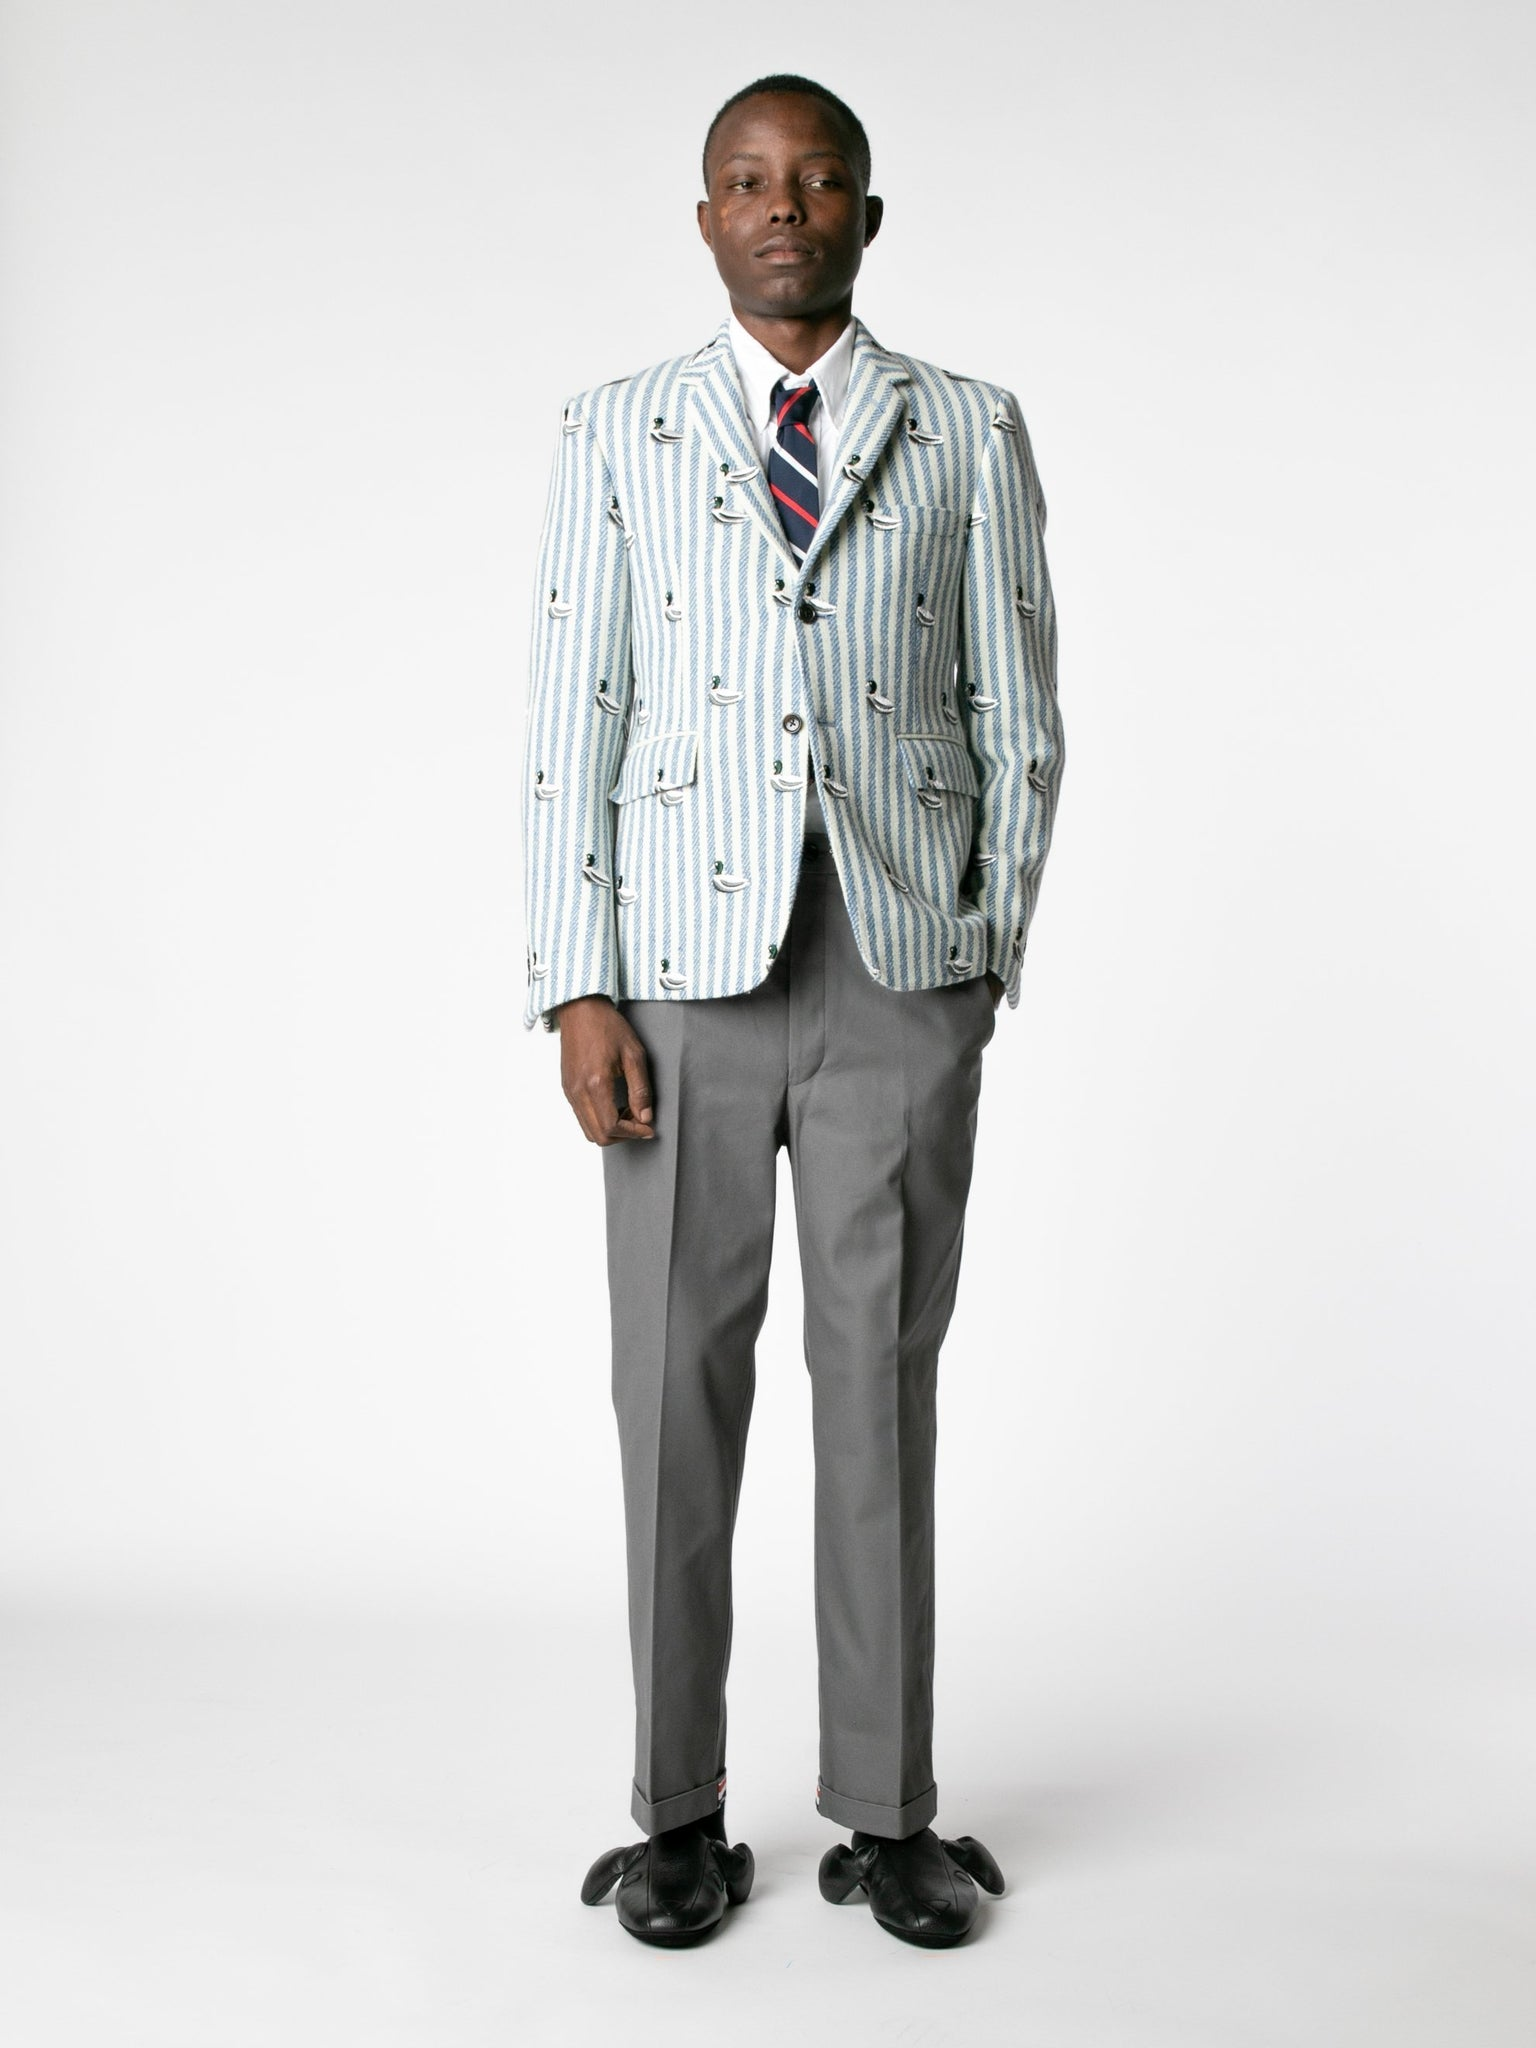 classic-sb-s-c-in-university-stripe-herringbone-harris-tweed-w-duck-embroidery